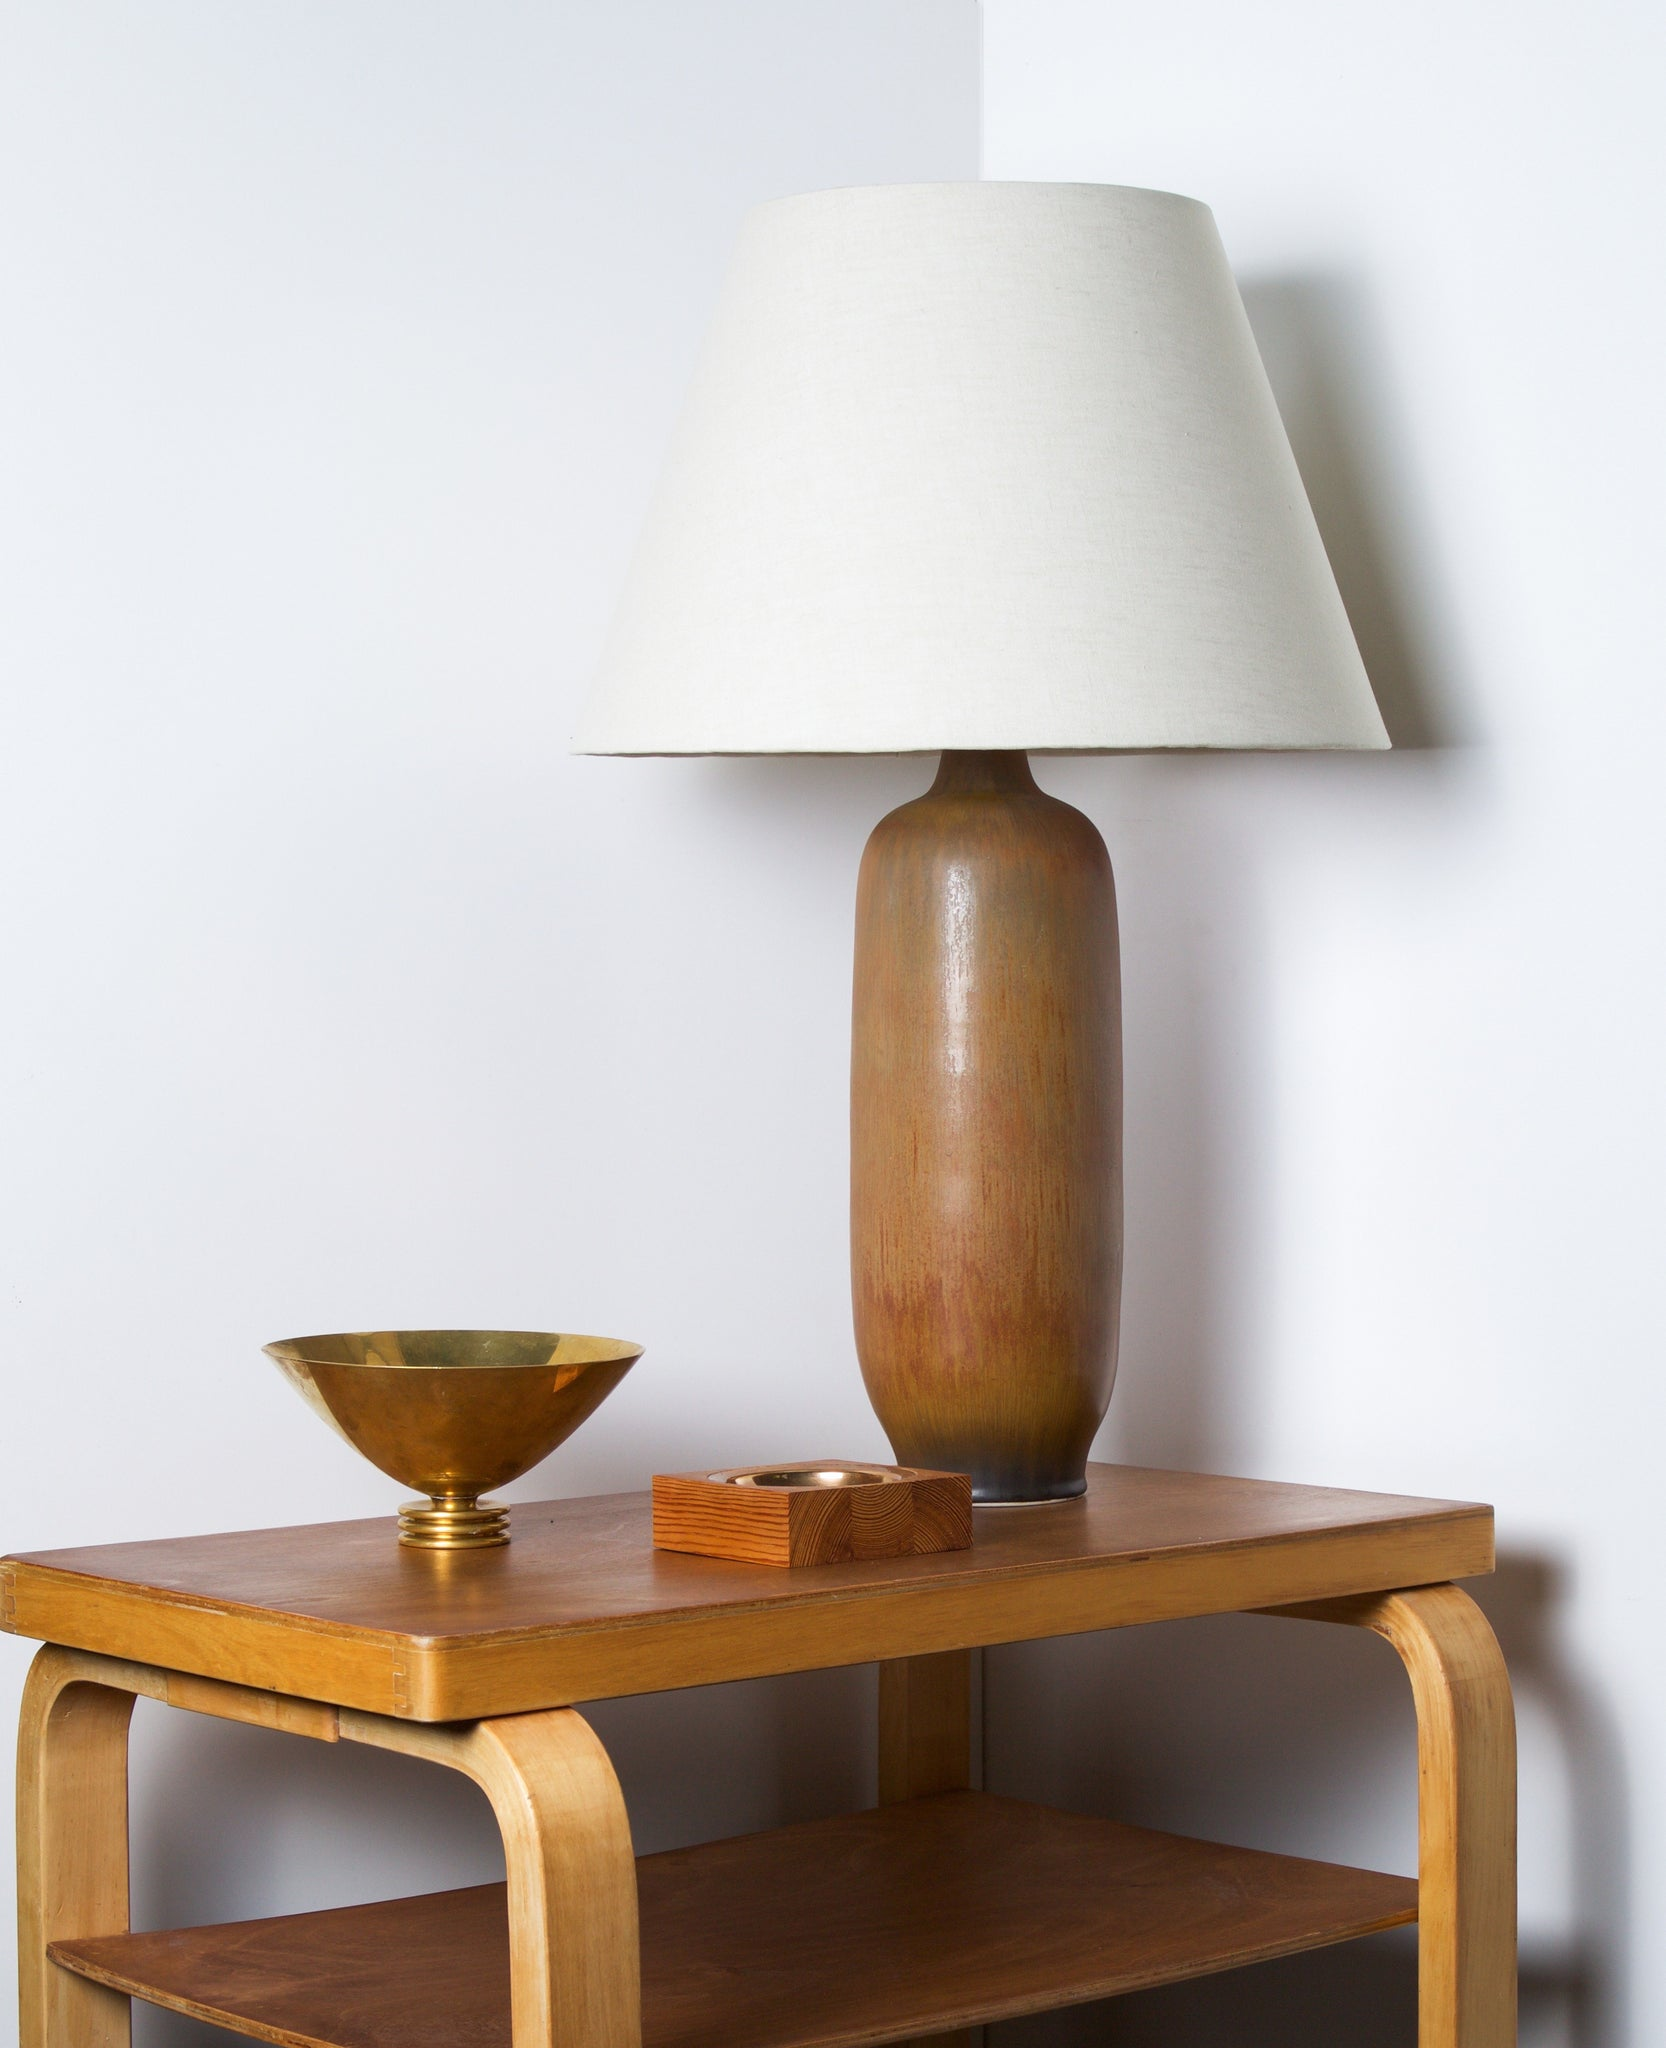 Large Ceramic Table Lamp by Carl-Harry Stålhane for Rörstrand Ab, Sweden